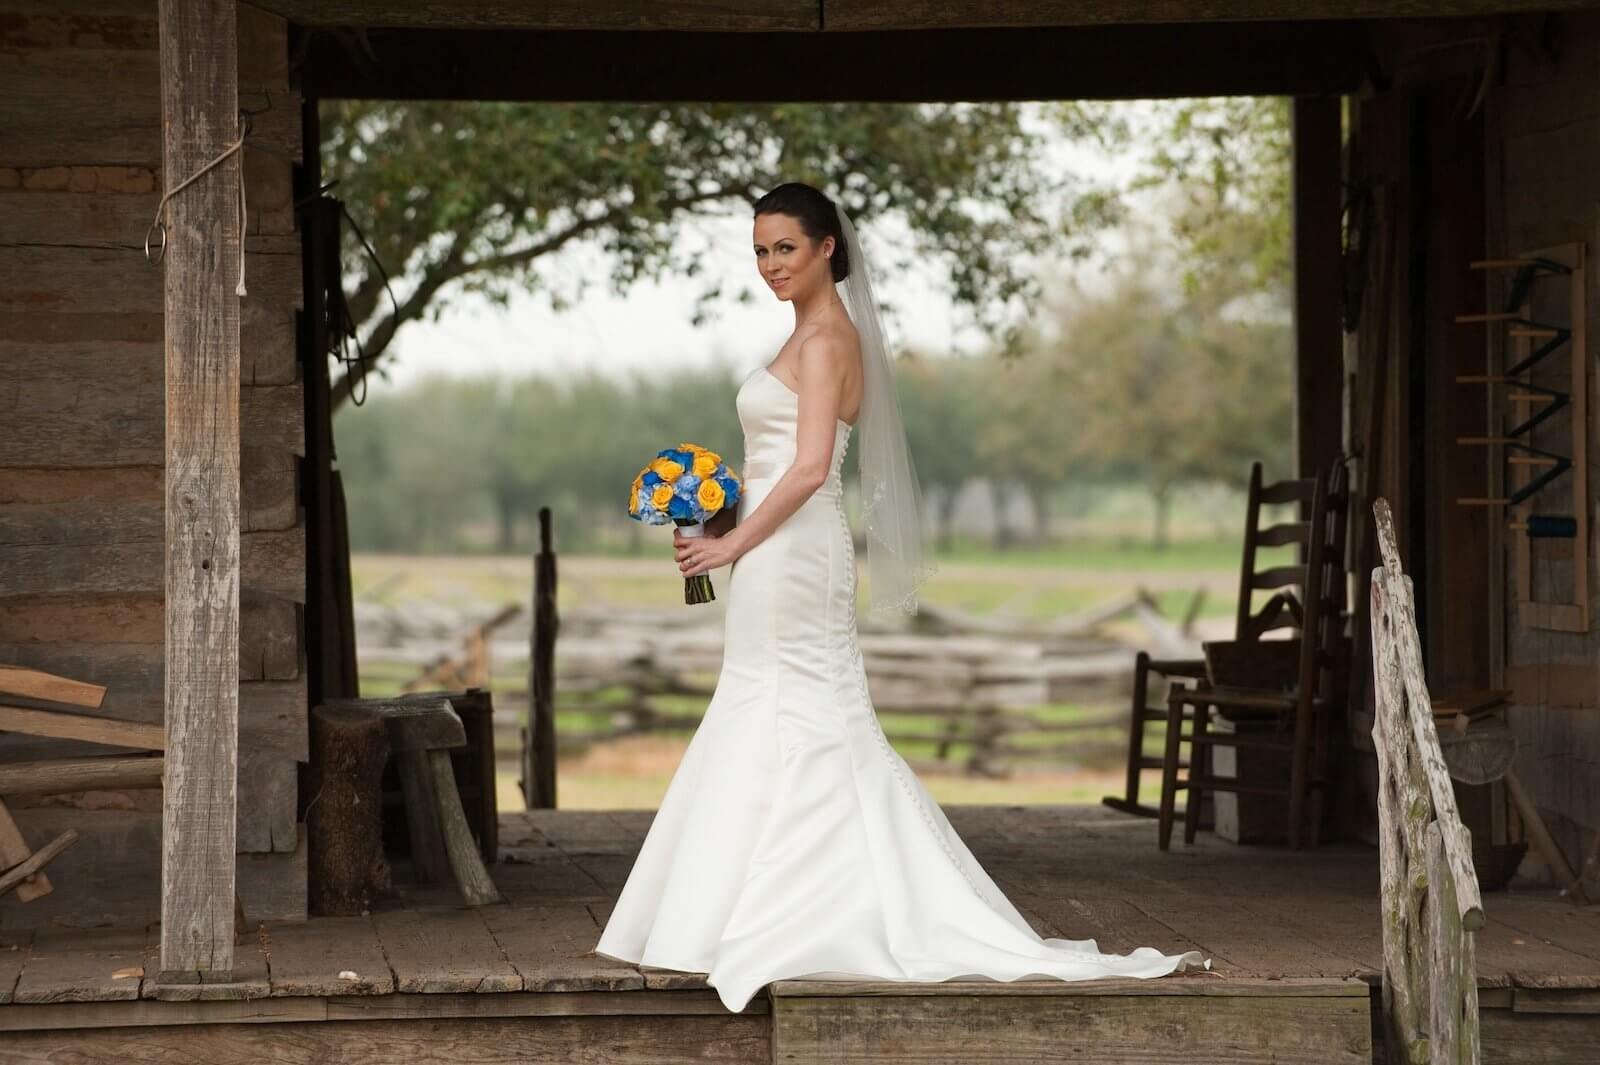 Stock Farm Wedding